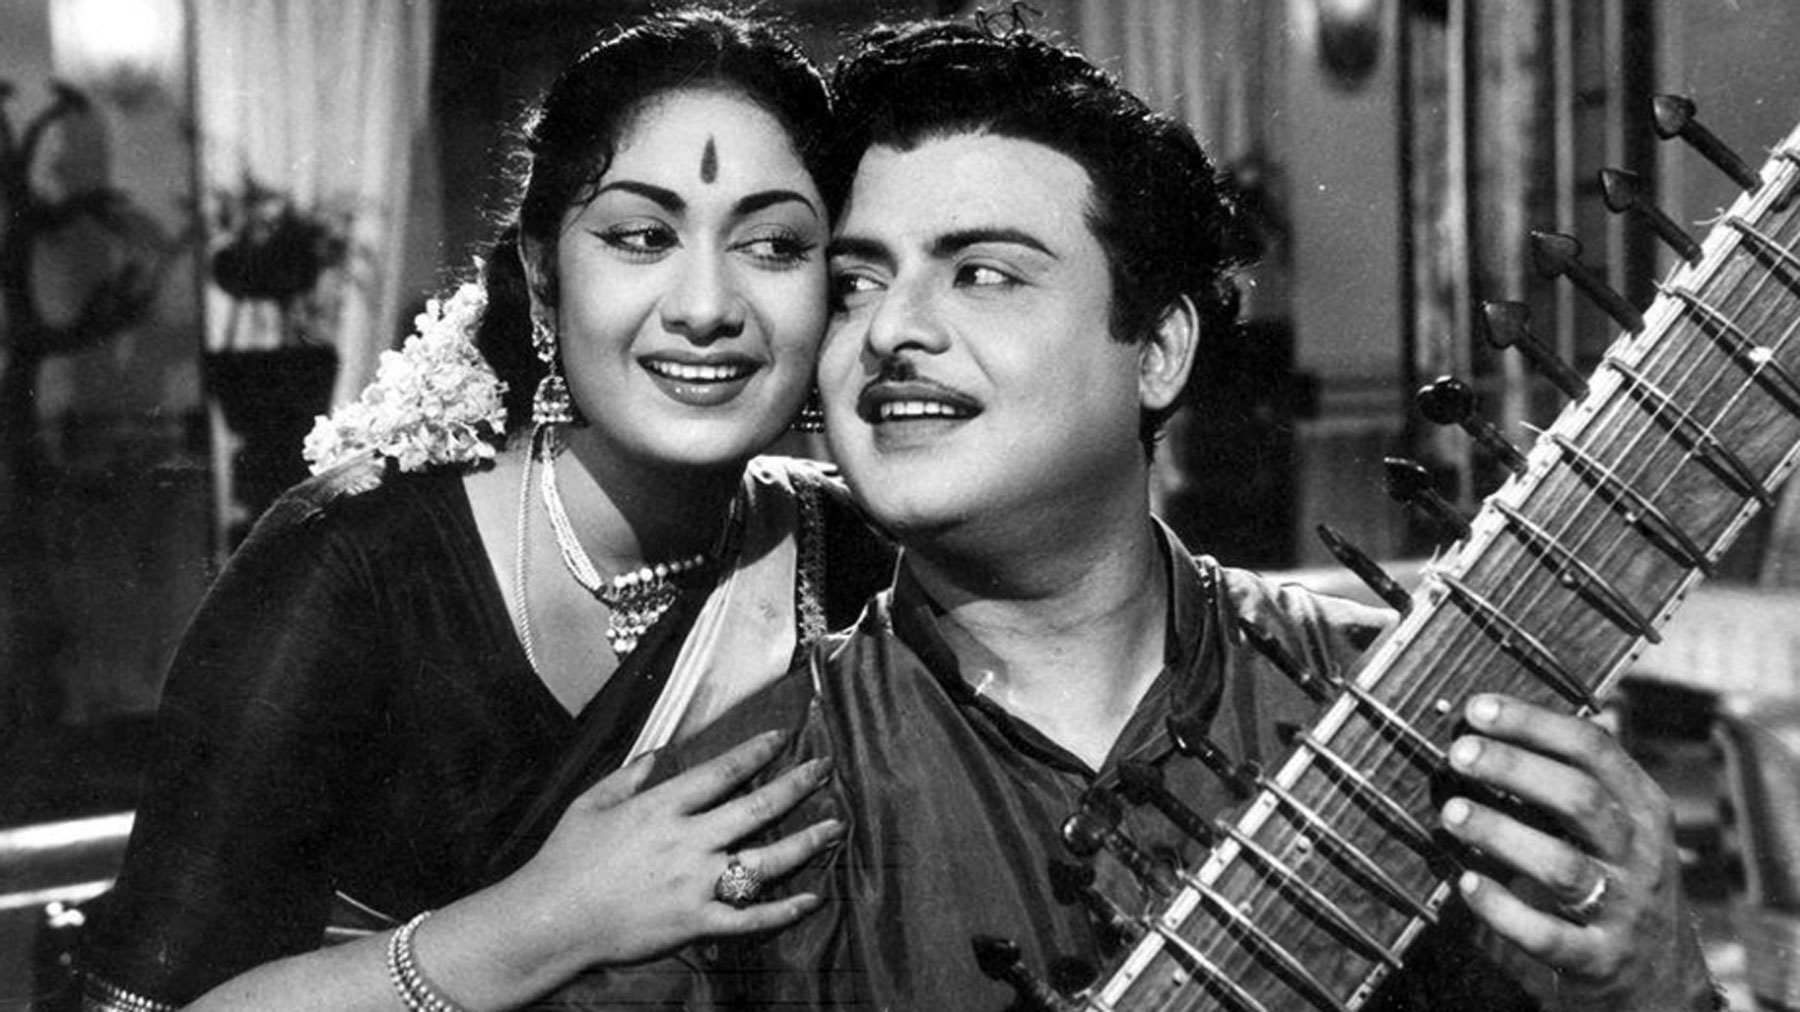 Kadhal Mannan Gemini Ganesan Fascinating Facts About The: Gemini Ganesan Anniversary Special: The Secret Life Of